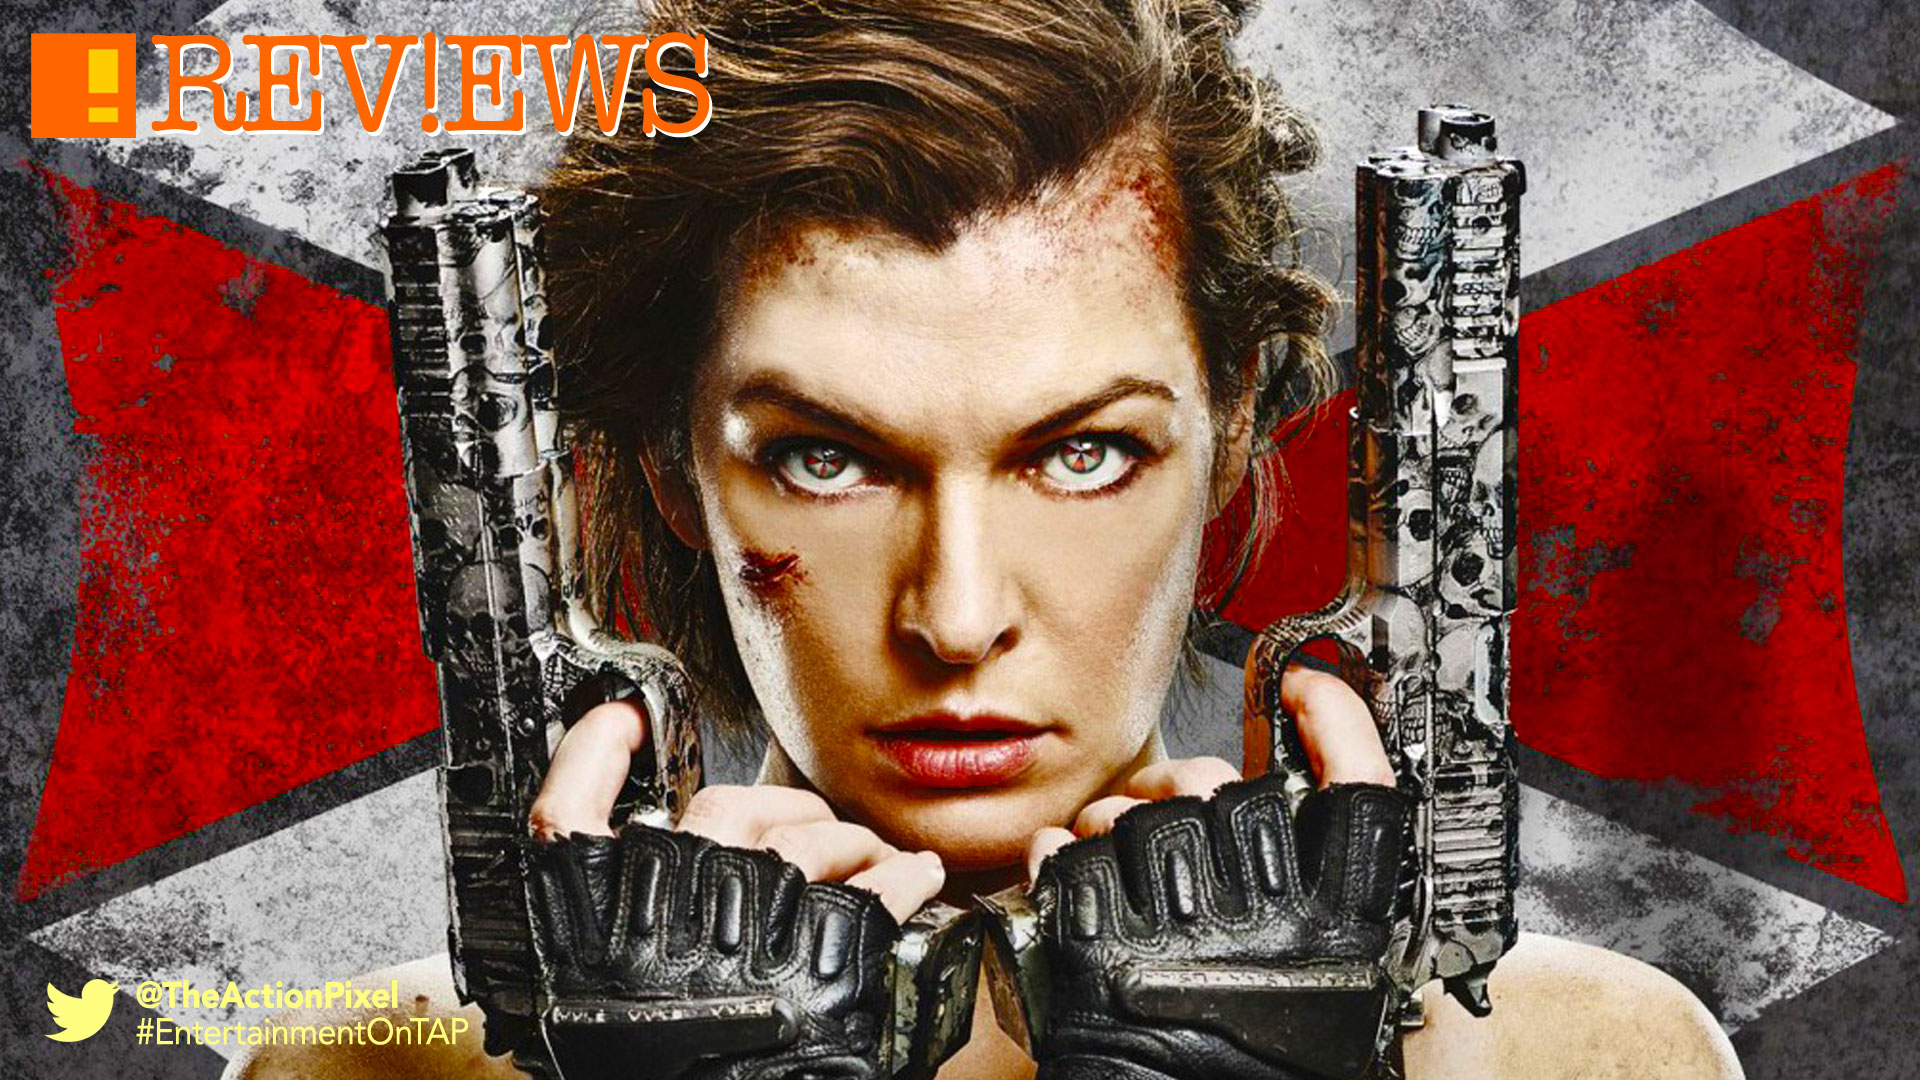 resident evil, timeline, the action pixel, entertainment on tap, tap reviews, screen gems, sony, capcom, milla jovovich, resident evil, poster, resident evil: the final chapter, the final chapter, screen gem, sony pictures, capcom,